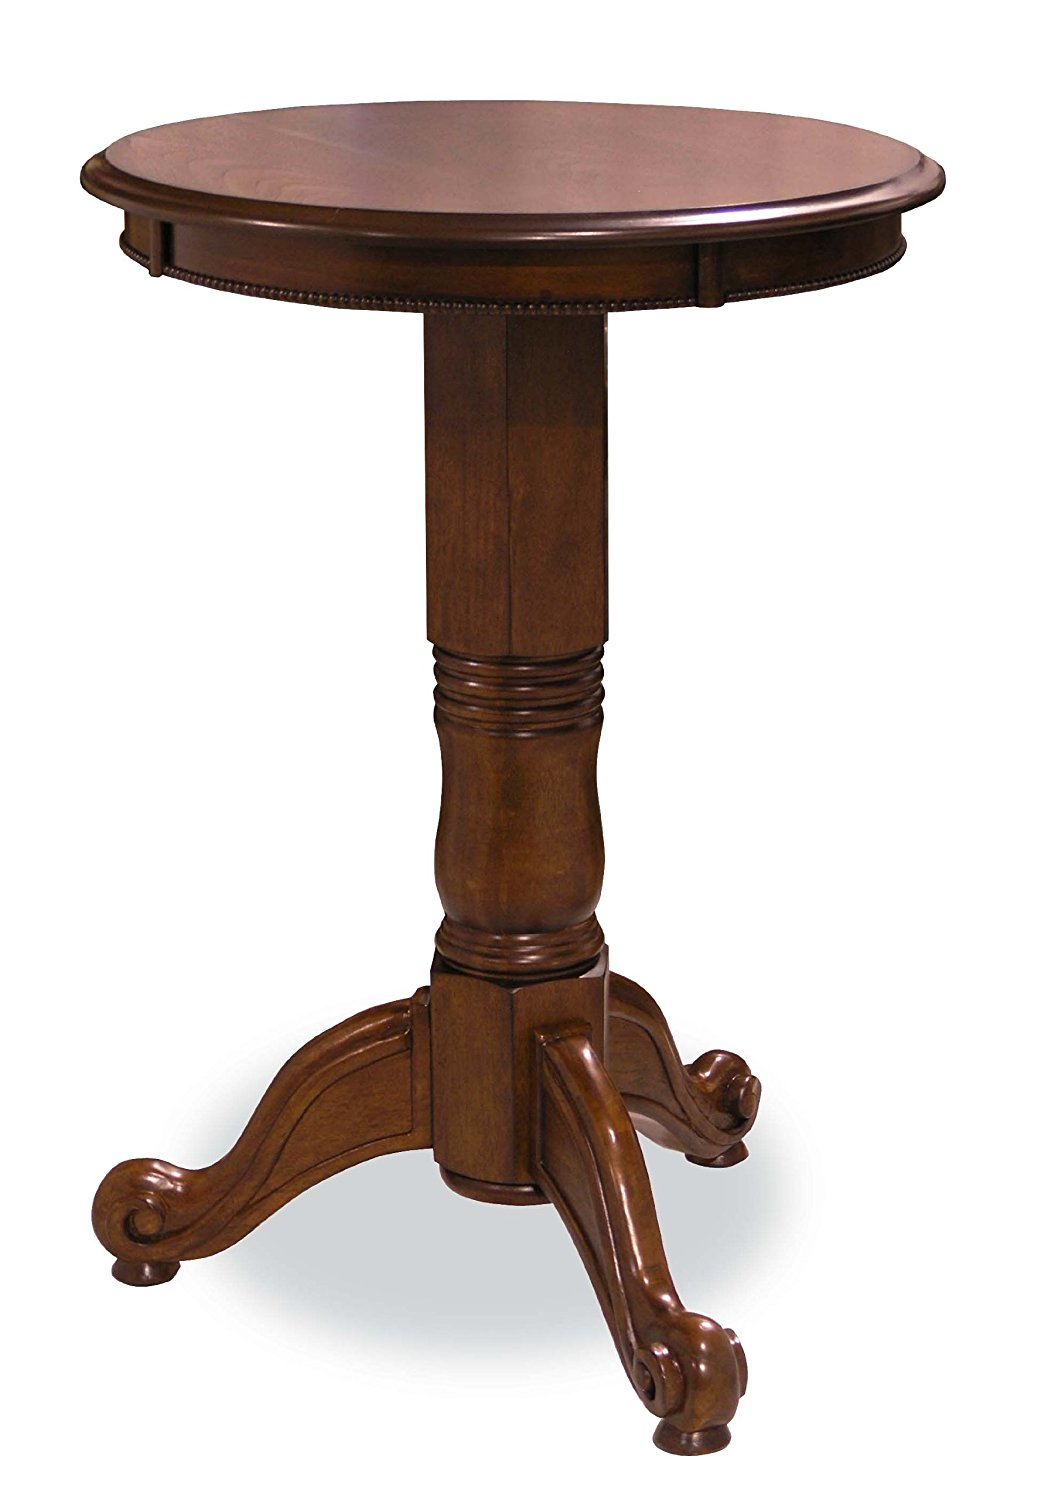 Executive Pub Table (Chestnut)